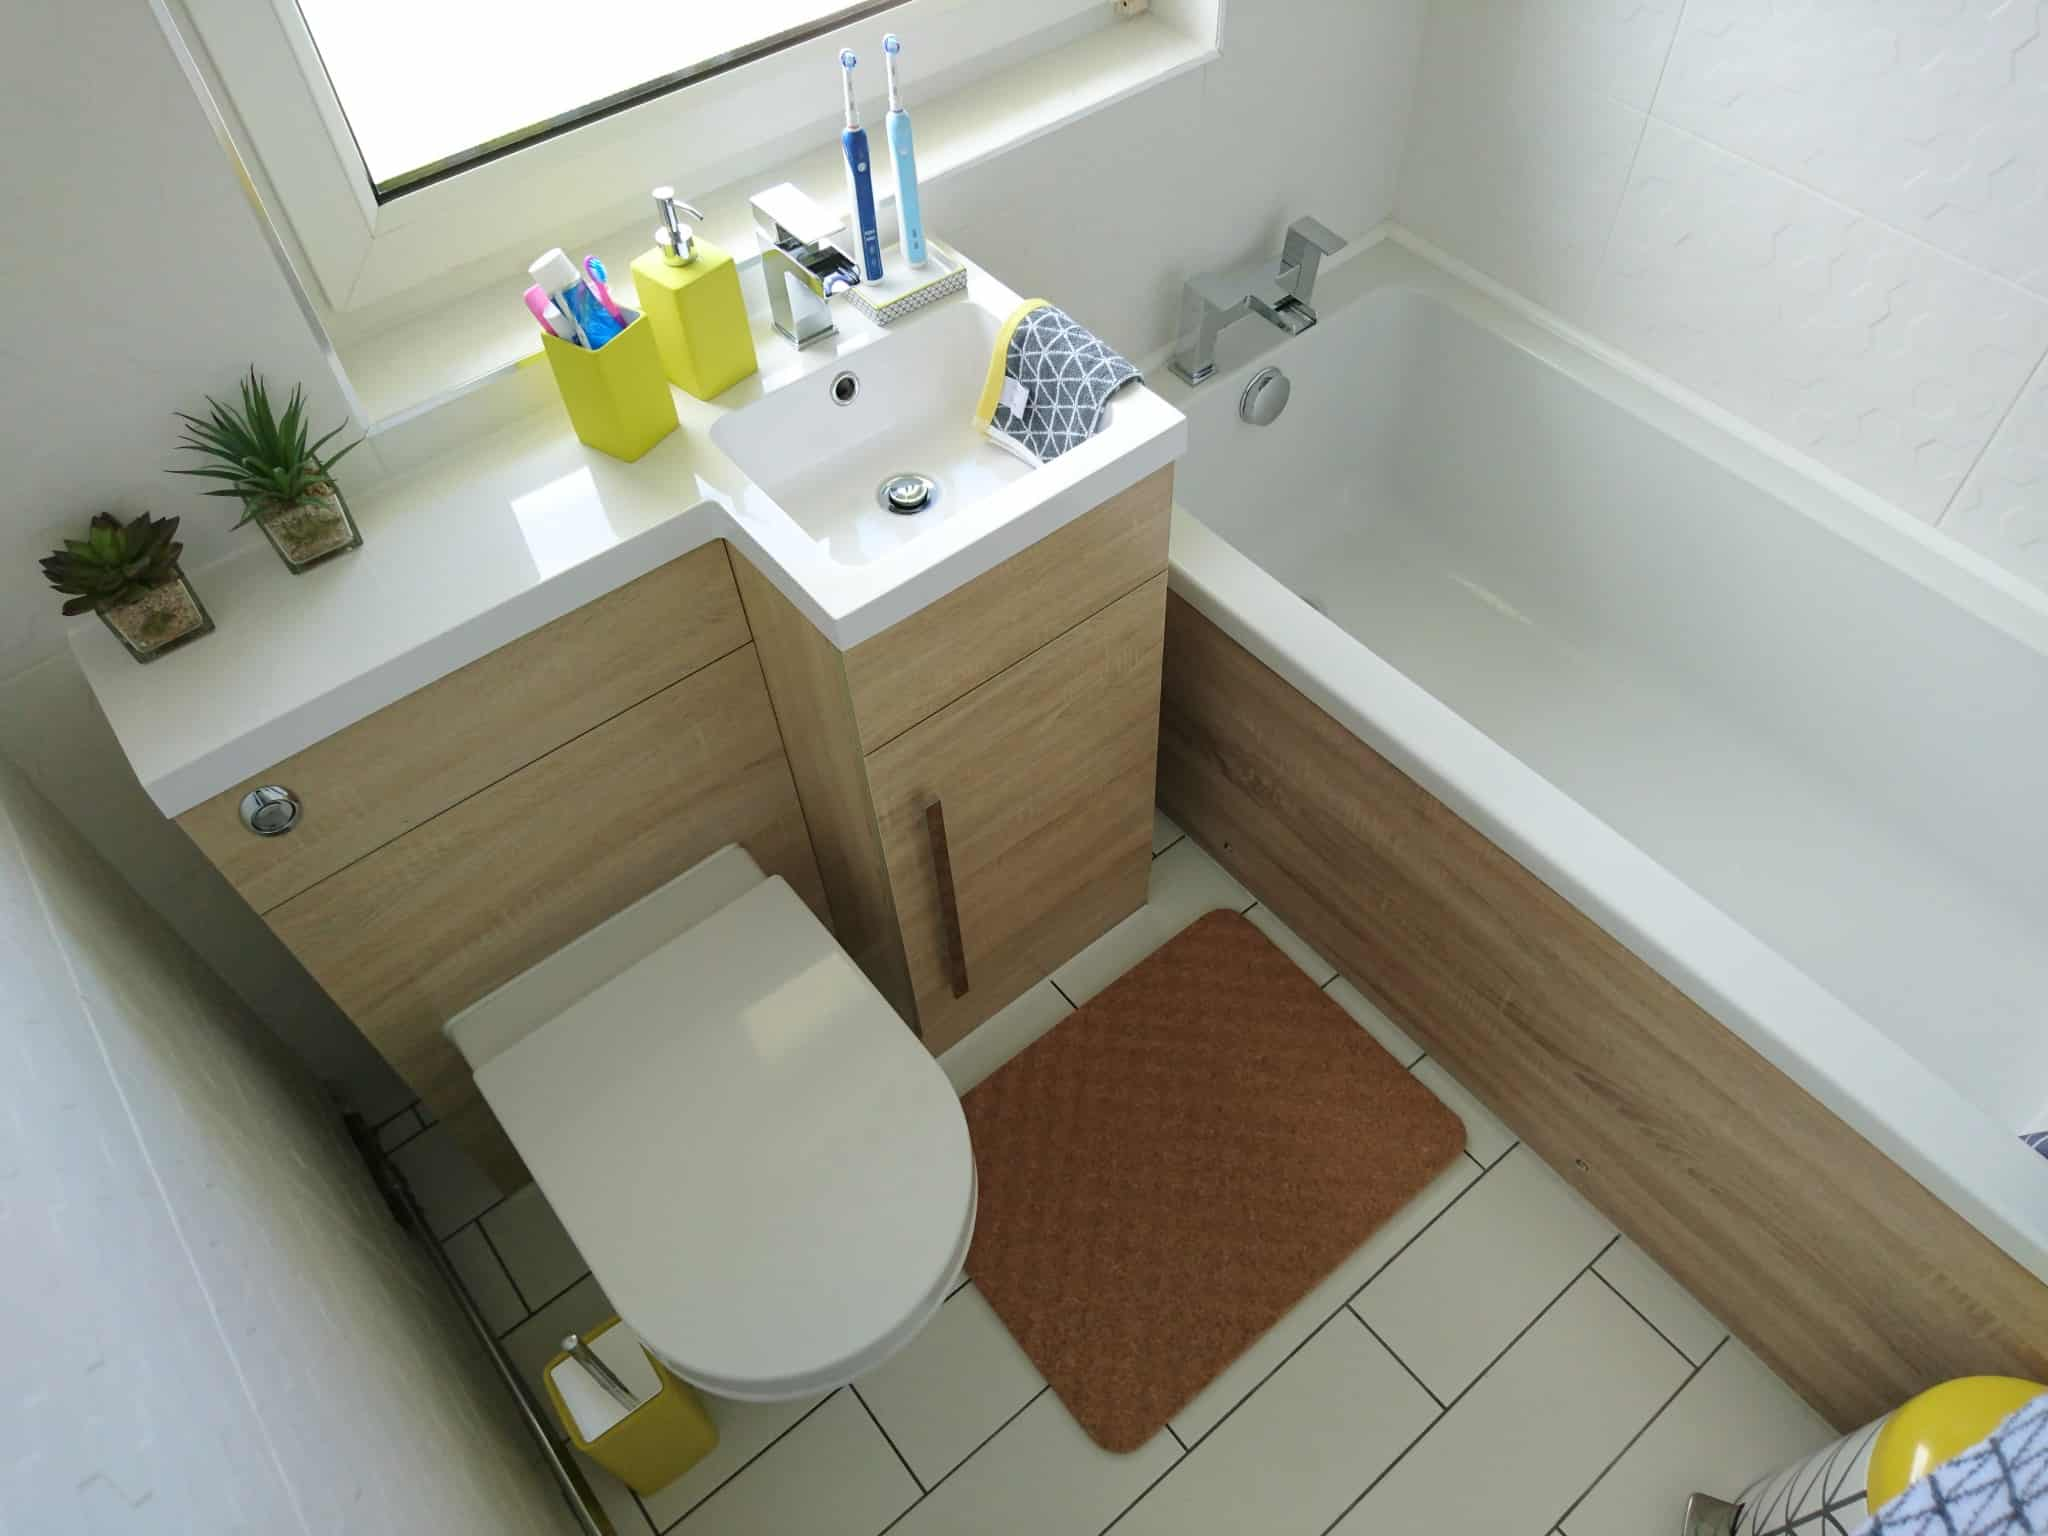 Small Bathroom - tips for preparing to sell your home